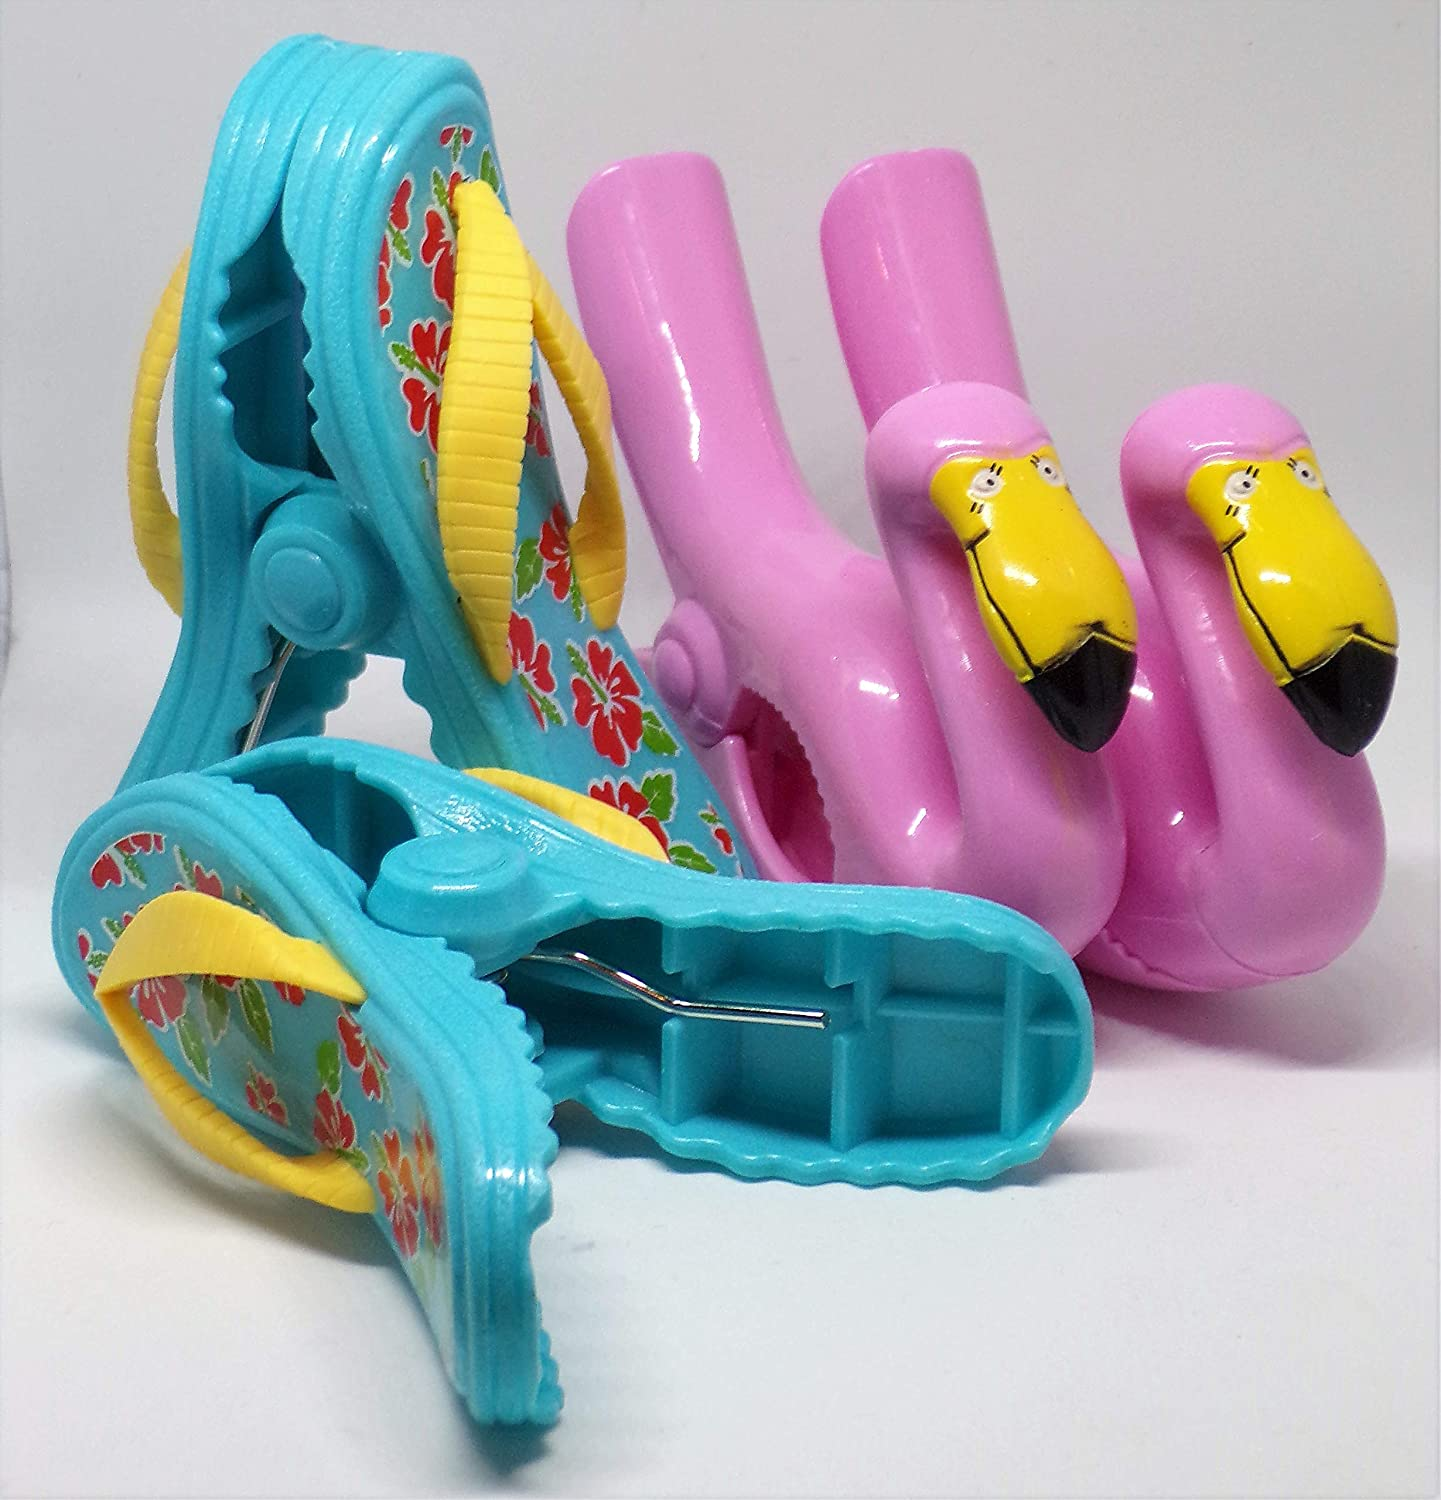 Beach Towel Clips Boca style - 2 pairs Flip flops and Flamingo .